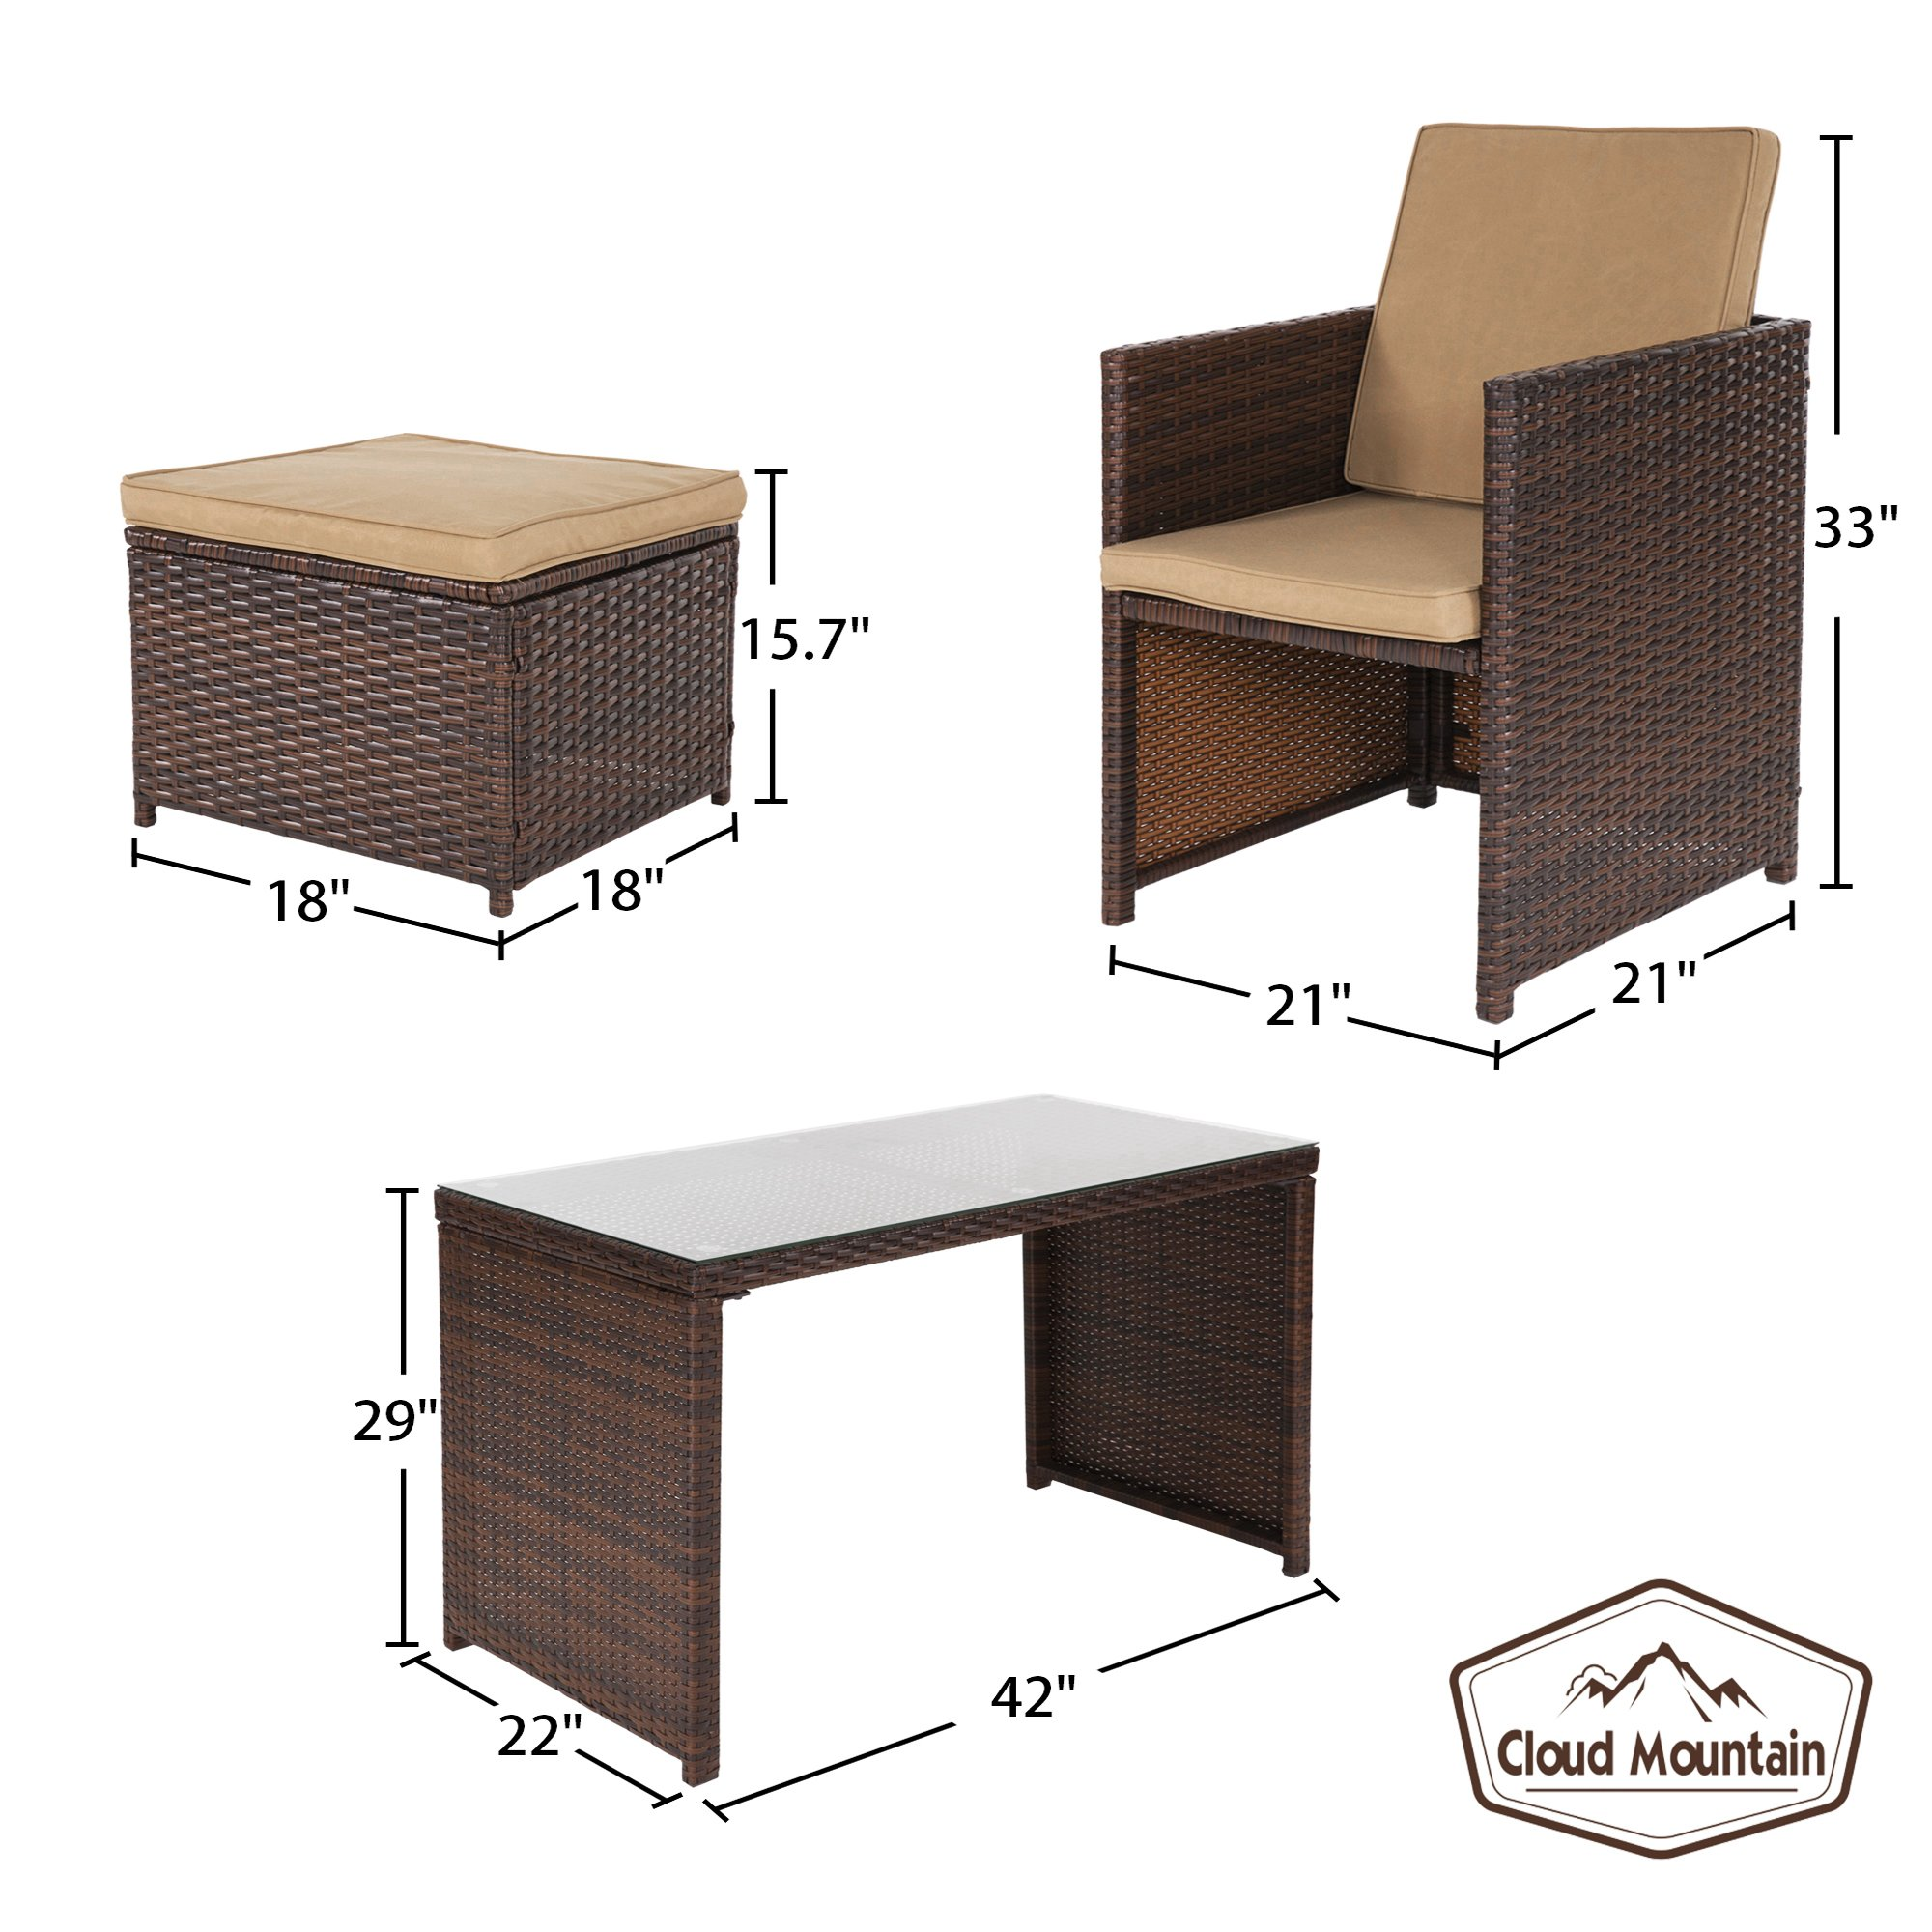 Cloud Mountain Outdoor 5 Piece Rattan Wicker Furniture Bar Set Dining Set Cushioned Patio Furniture Set Space Saving - 1 Patio Dining Table & 4 Conversation Bistro Set, Brown by Cloud Mountain (Image #3)